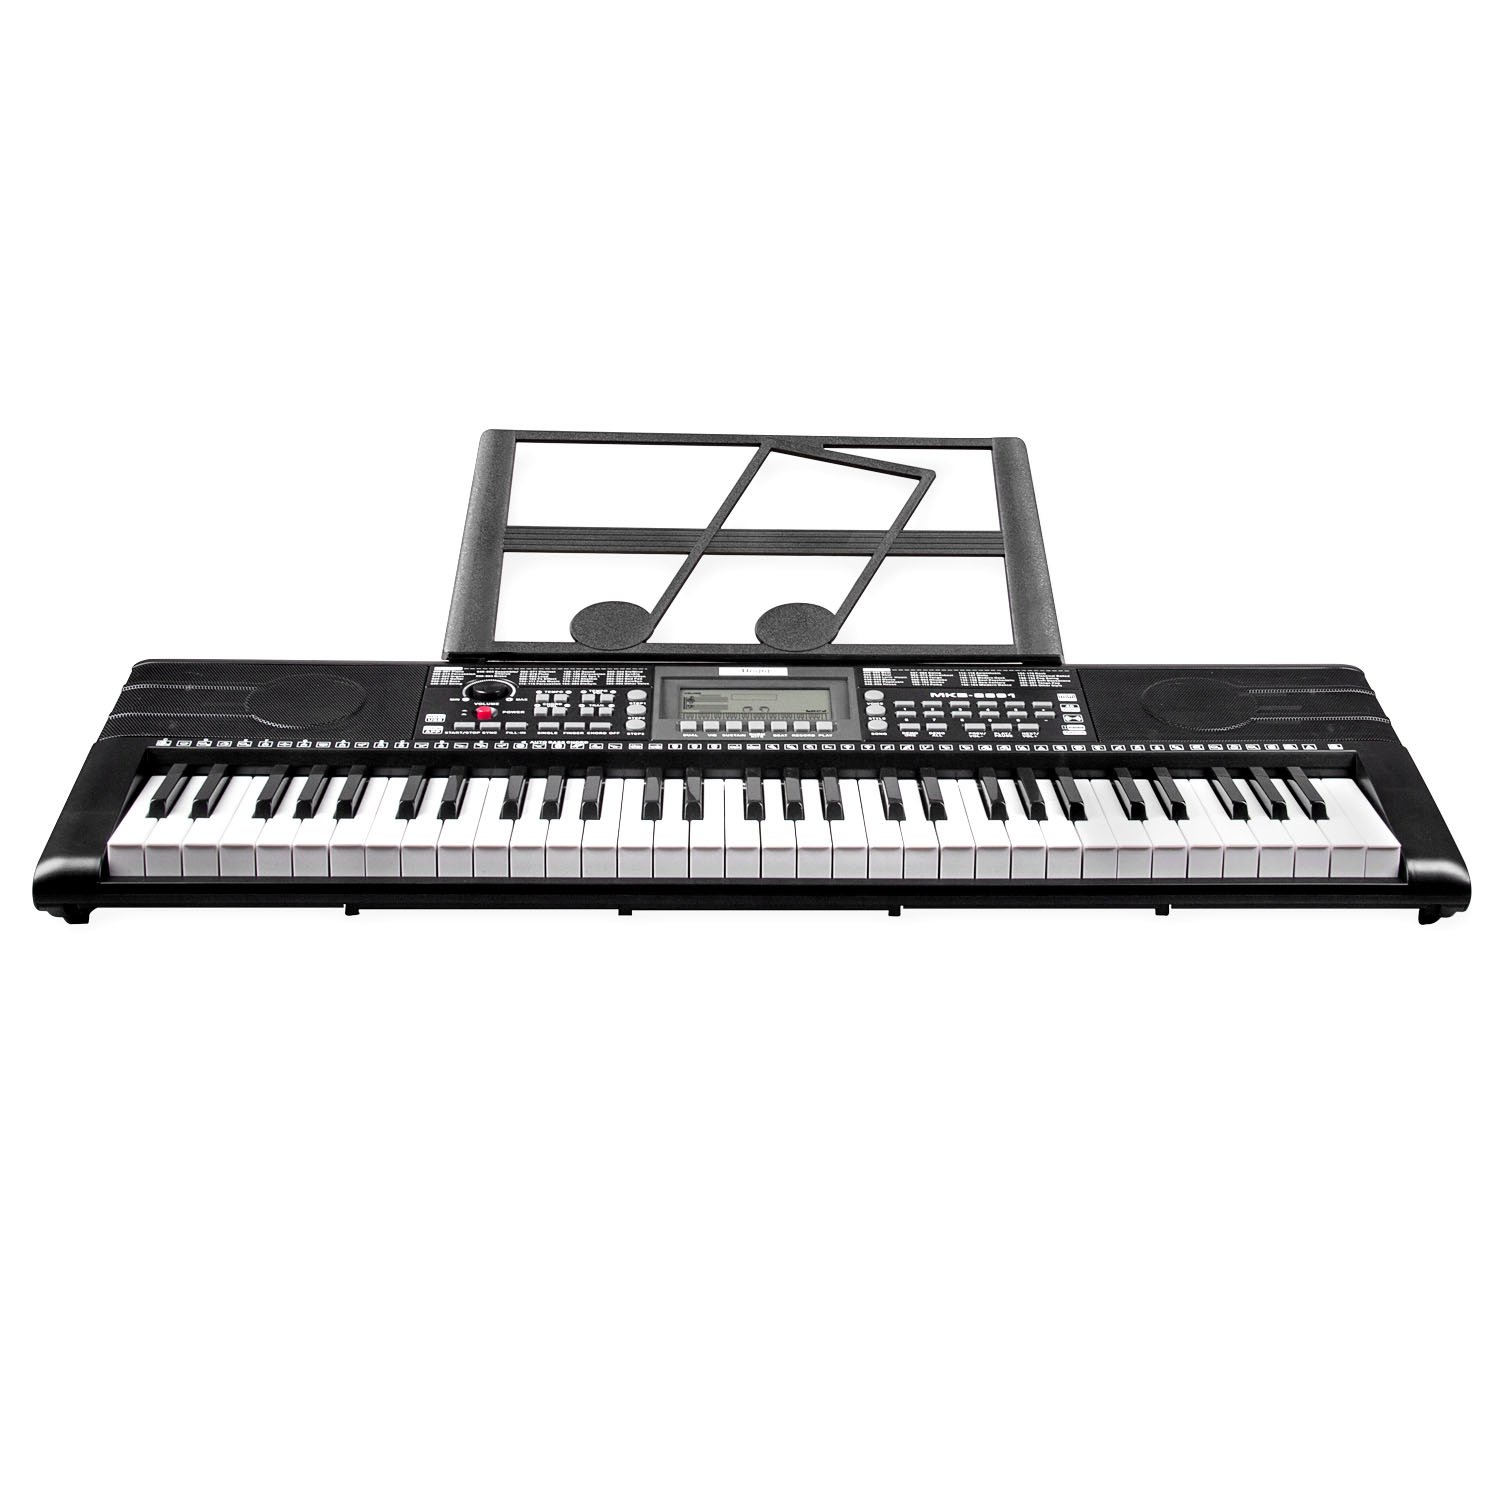 Keyboard Piano, Mugig 61-key Portable Electric Keyboard Piano with Sheet Music Stand, 3 Intelligent Education Teaching Mode, Dual Power Supply&USB Port (Kids & Adults) by Mugig (Image #7)